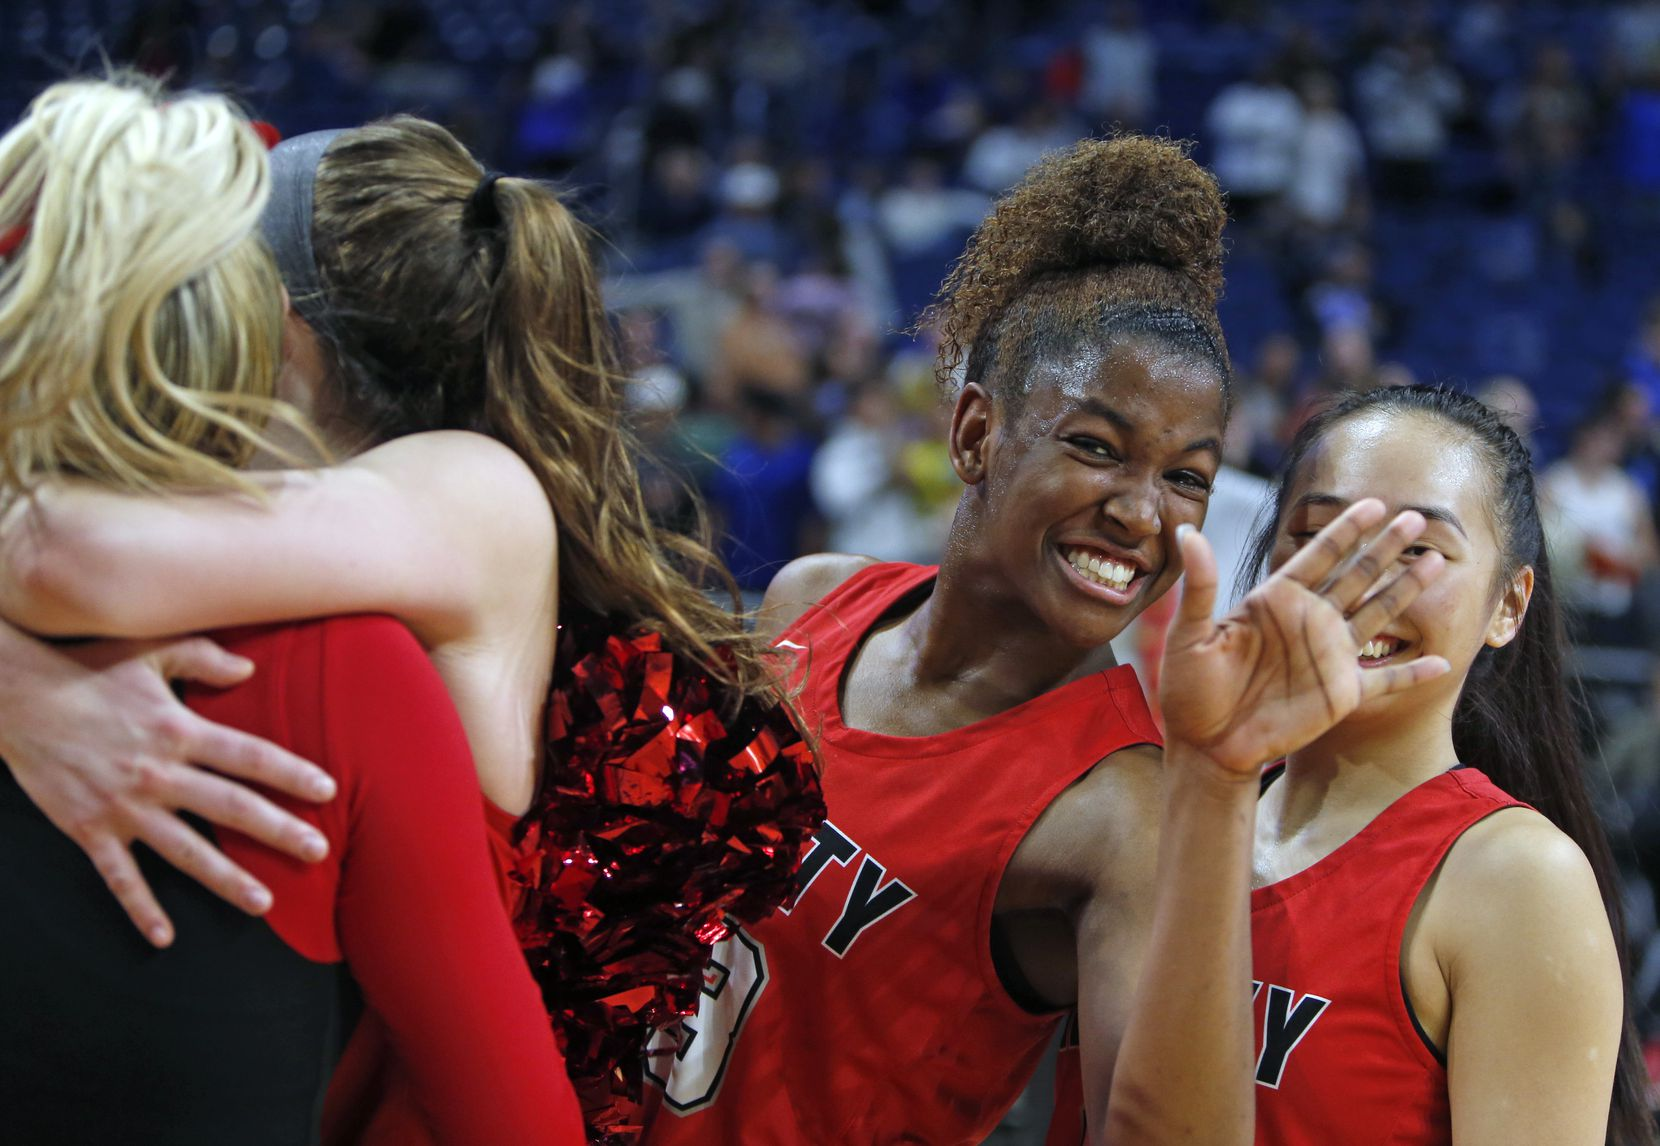 Liberty's Randi Thompson mugs for camera as teammates celebrate their victory.  Kerrville Tivy v  Frisco Liberty in 5A semifinals at the Alamodome in San Antonio, TX on Thursday, February 28, 2019.